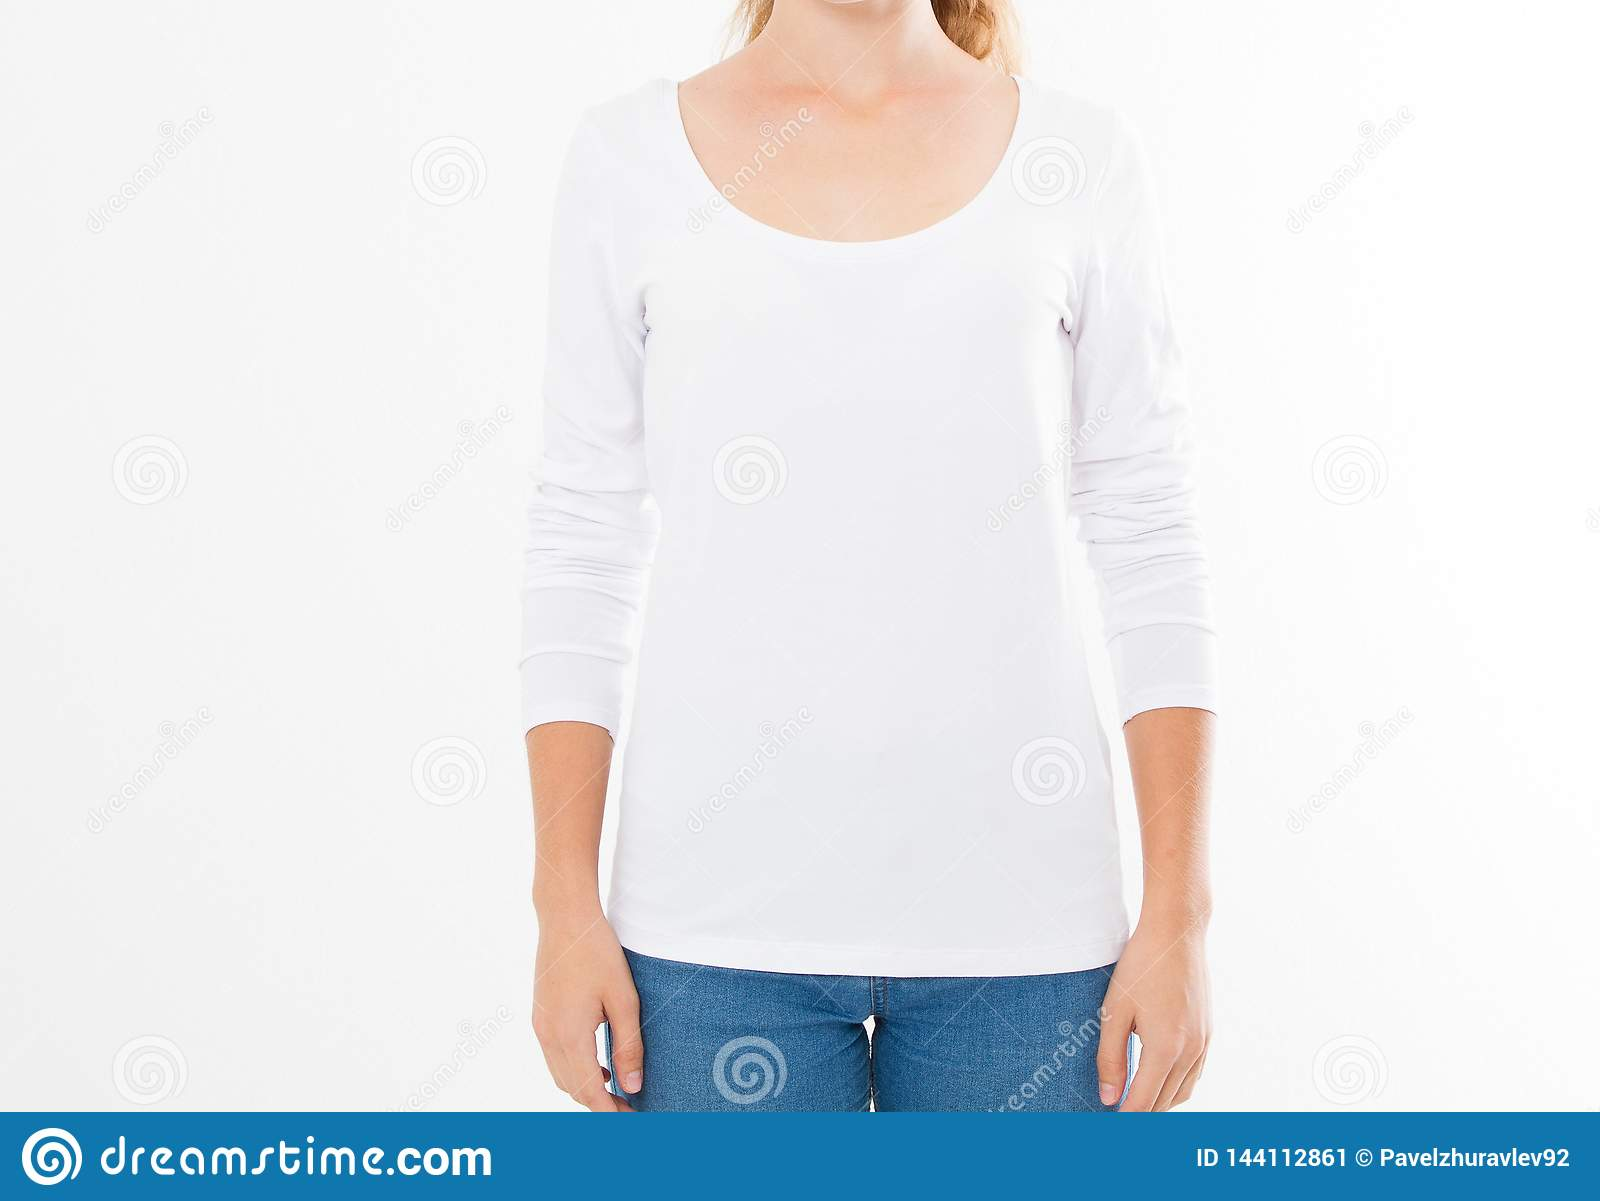 Midsection Of Young Woman Wearing Blank Tshirt On White